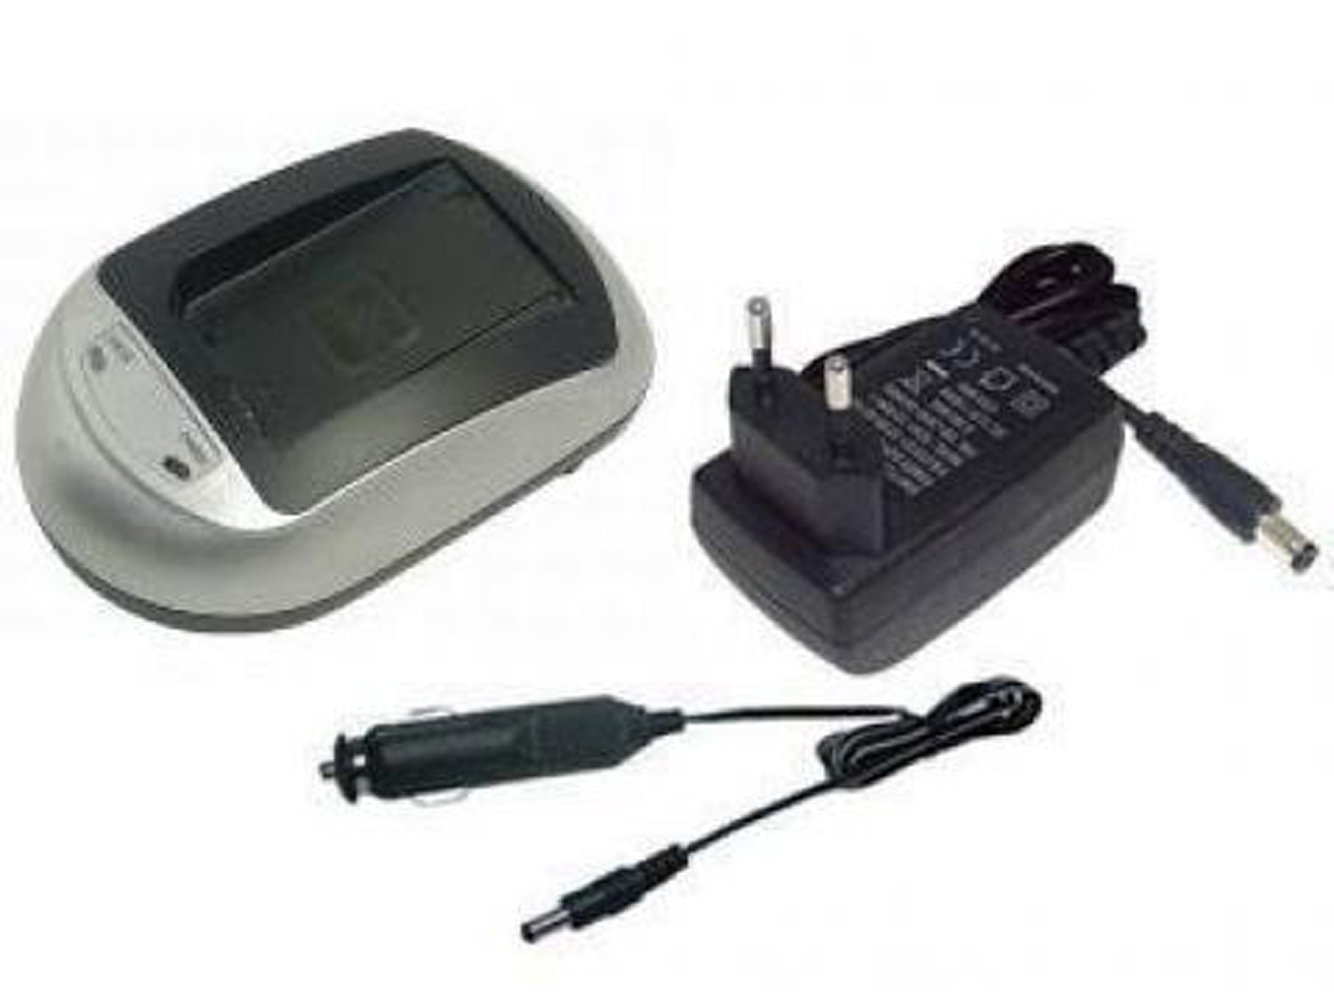 Battery Charger for NIKON EN-EL7, MH-56, MH-56AS